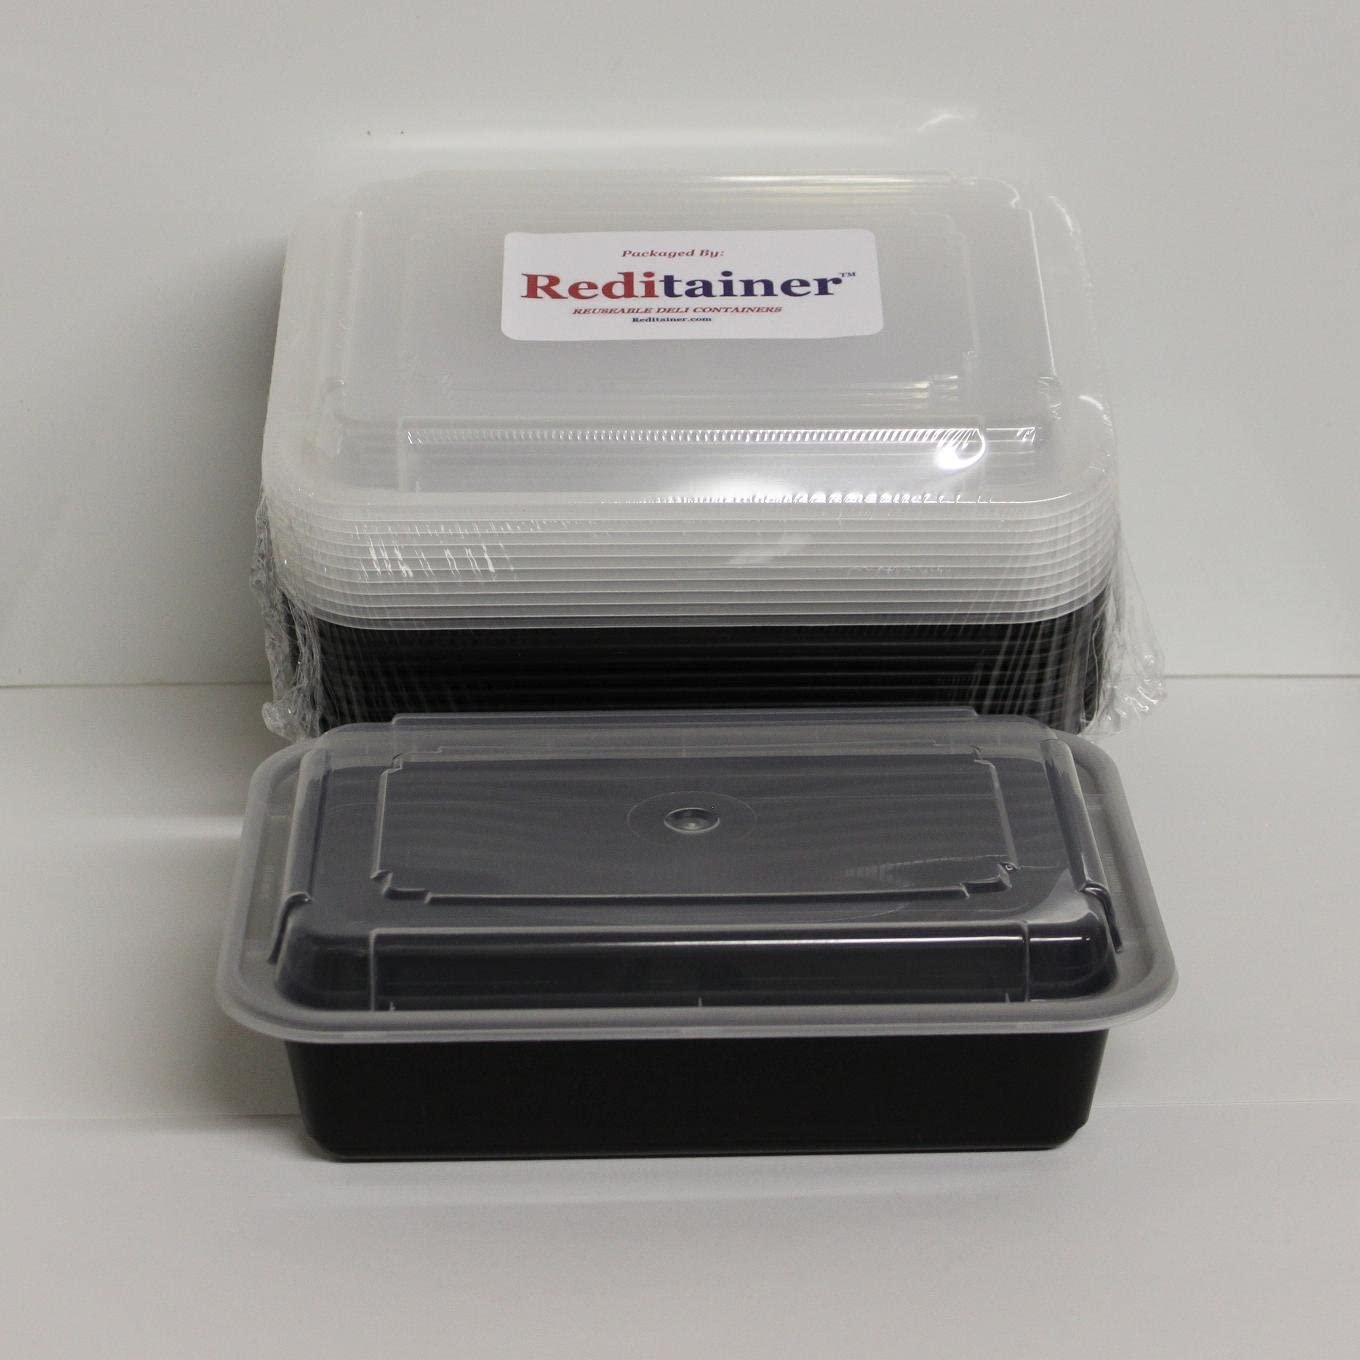 Reditainer Food Storage Containers with Lids (10, 6